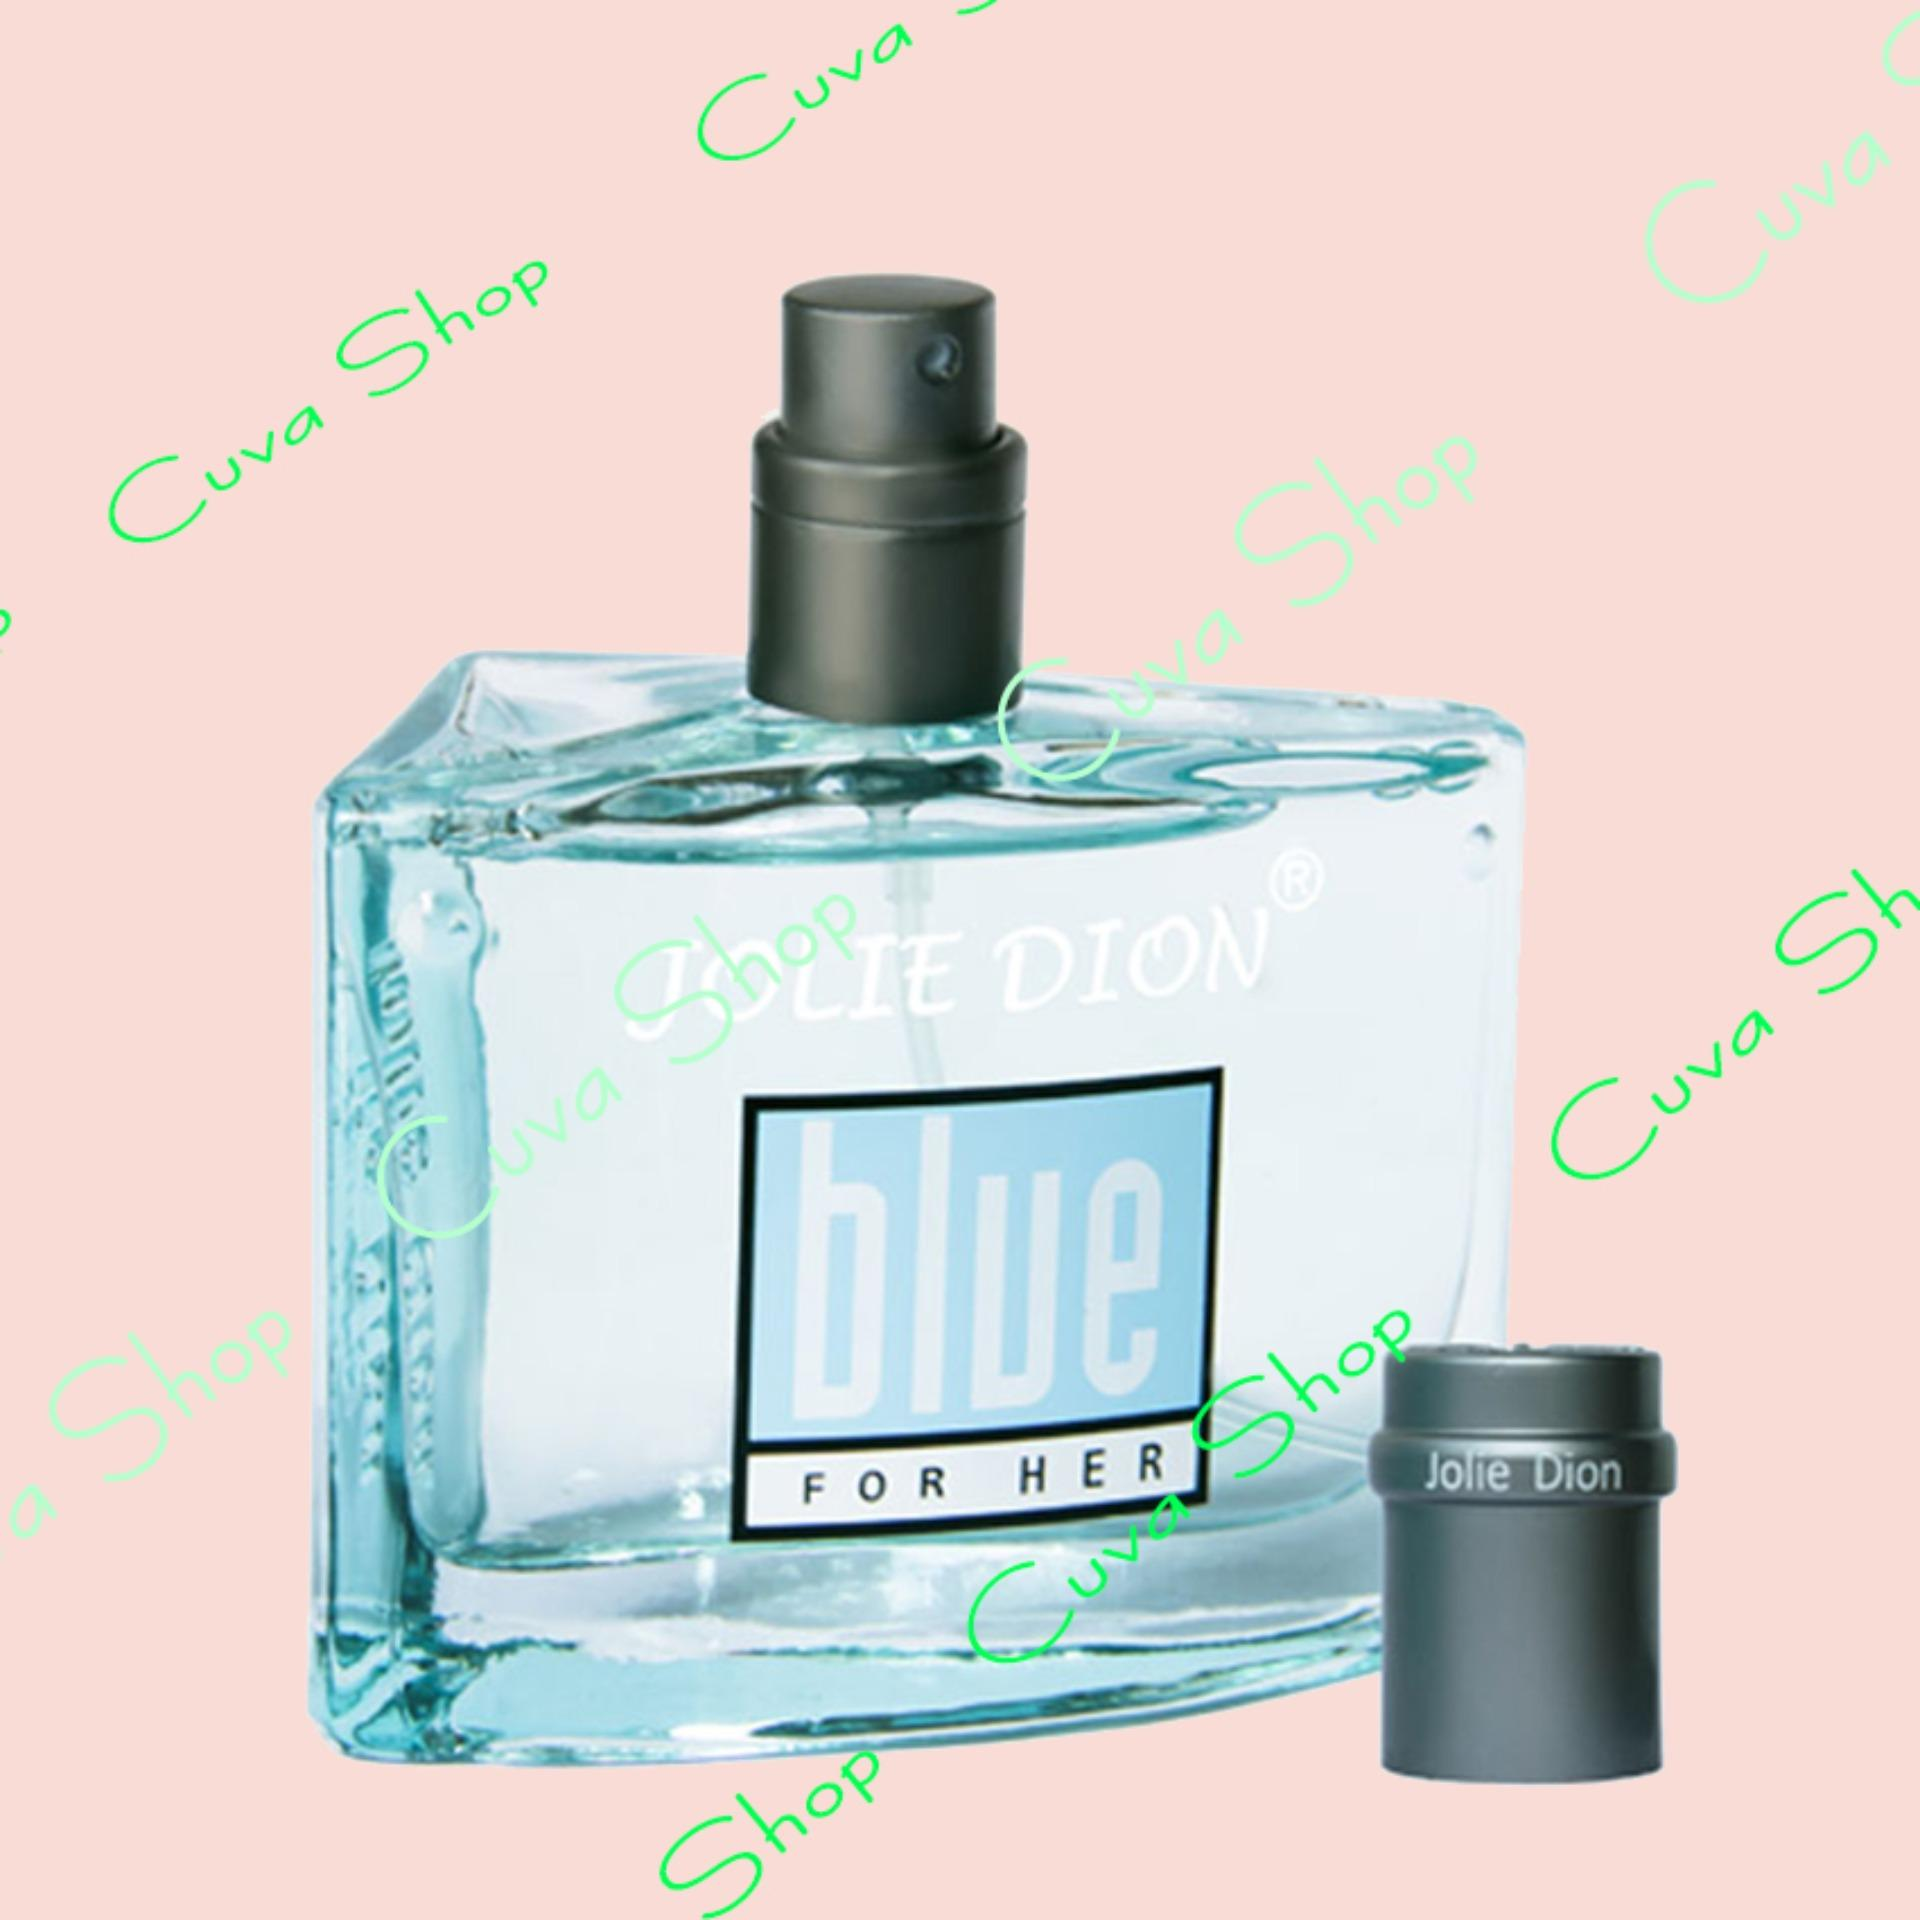 Nước hoa nữ Jolie Dion Blue for Her Eau de parfum Natural Spray 60ml